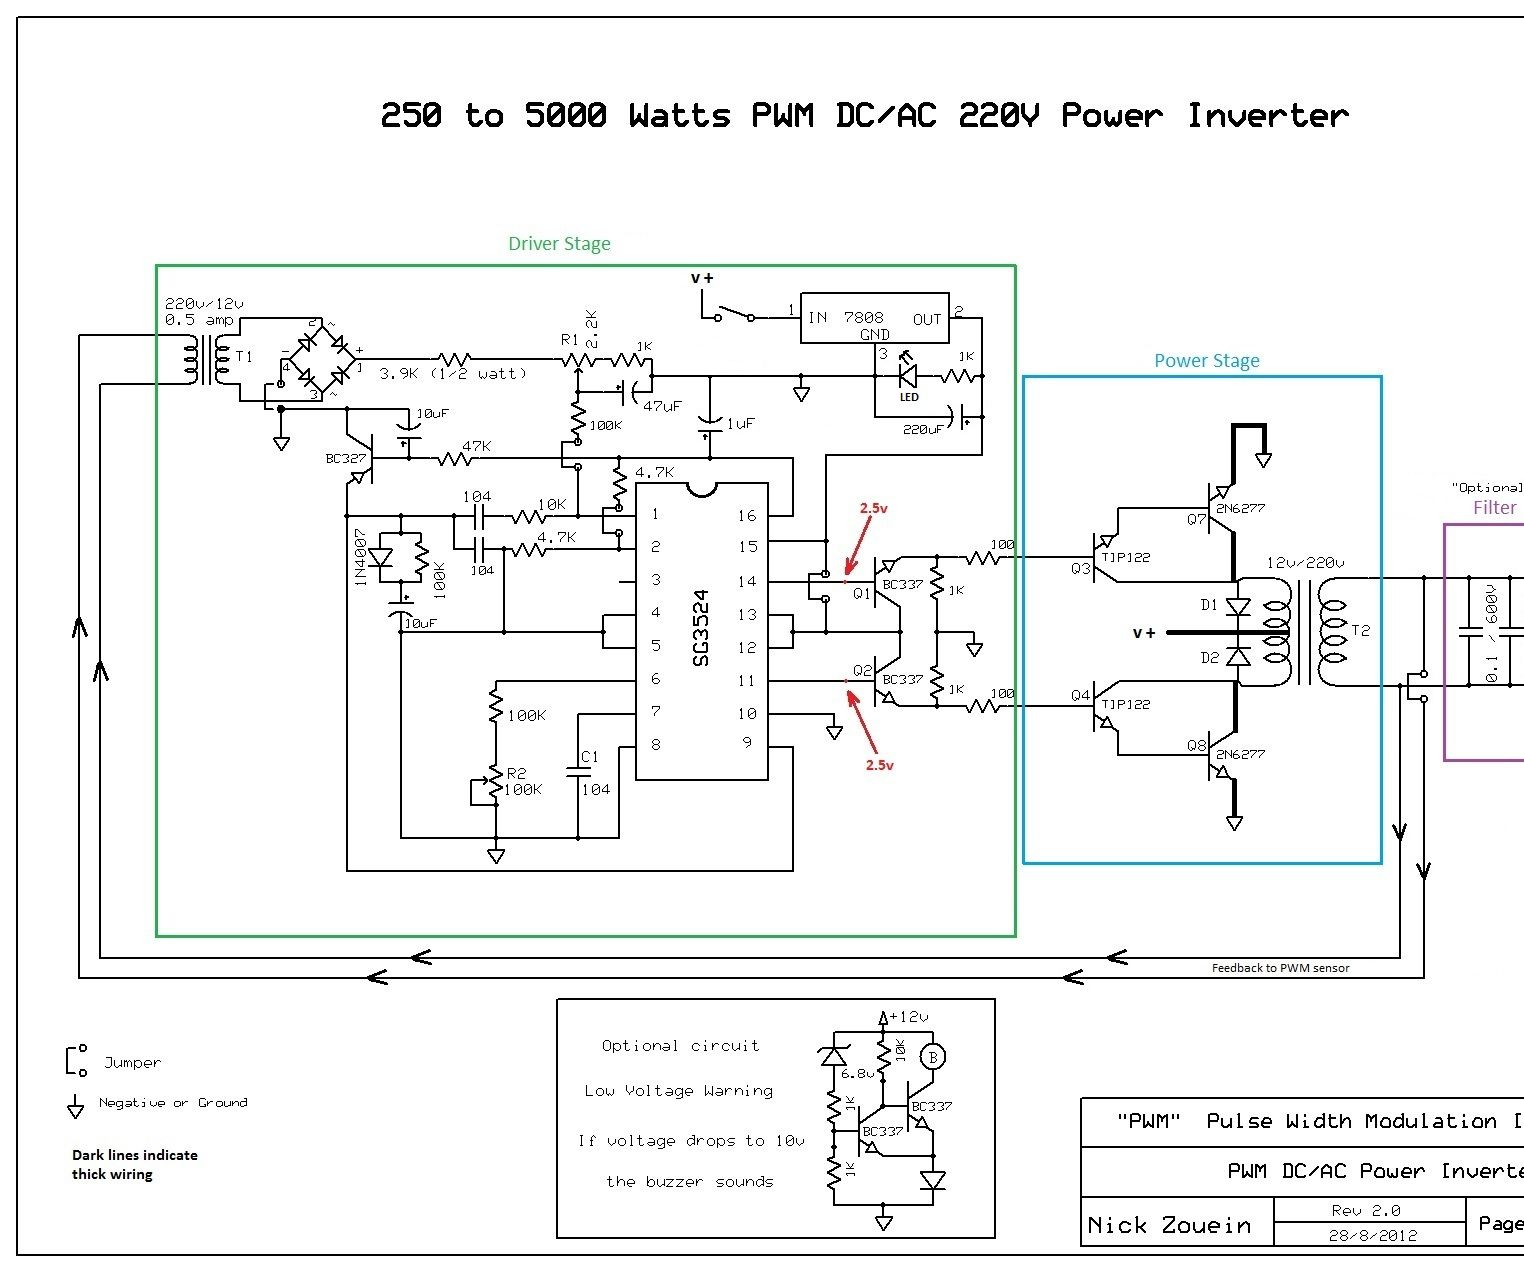 small resolution of 250 to 5000 watts pwm dc ac 220v power inverter how a pure sine wave inverter works circuit diagrams askcom auto